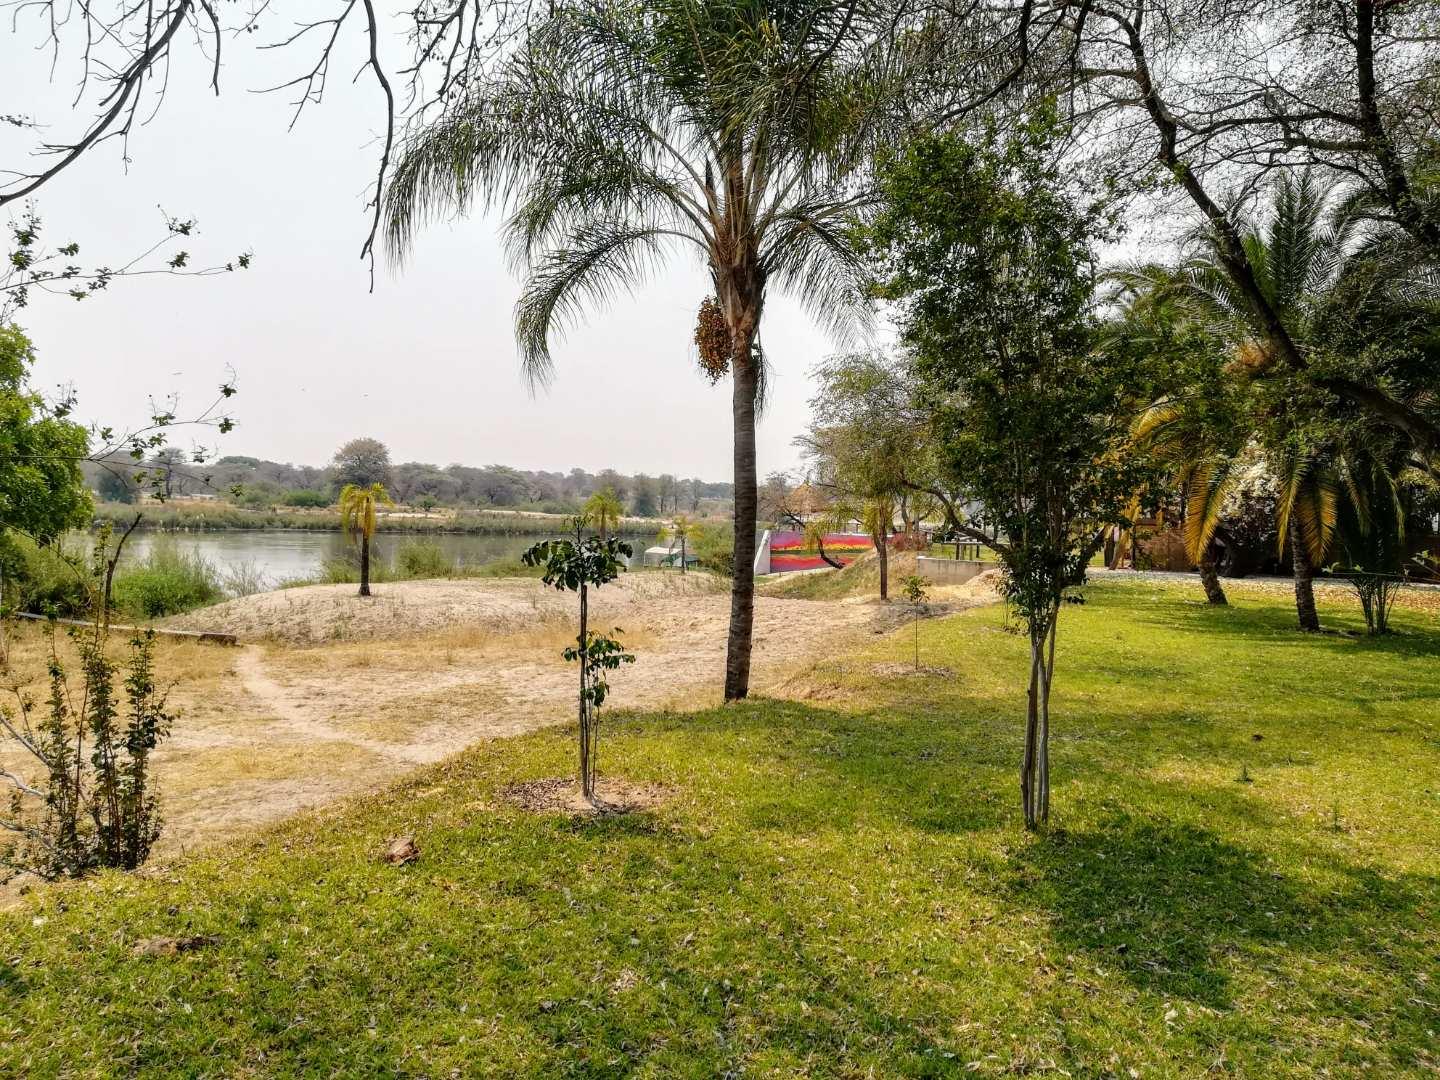 The Kavango river beautiful view from the bungalows.